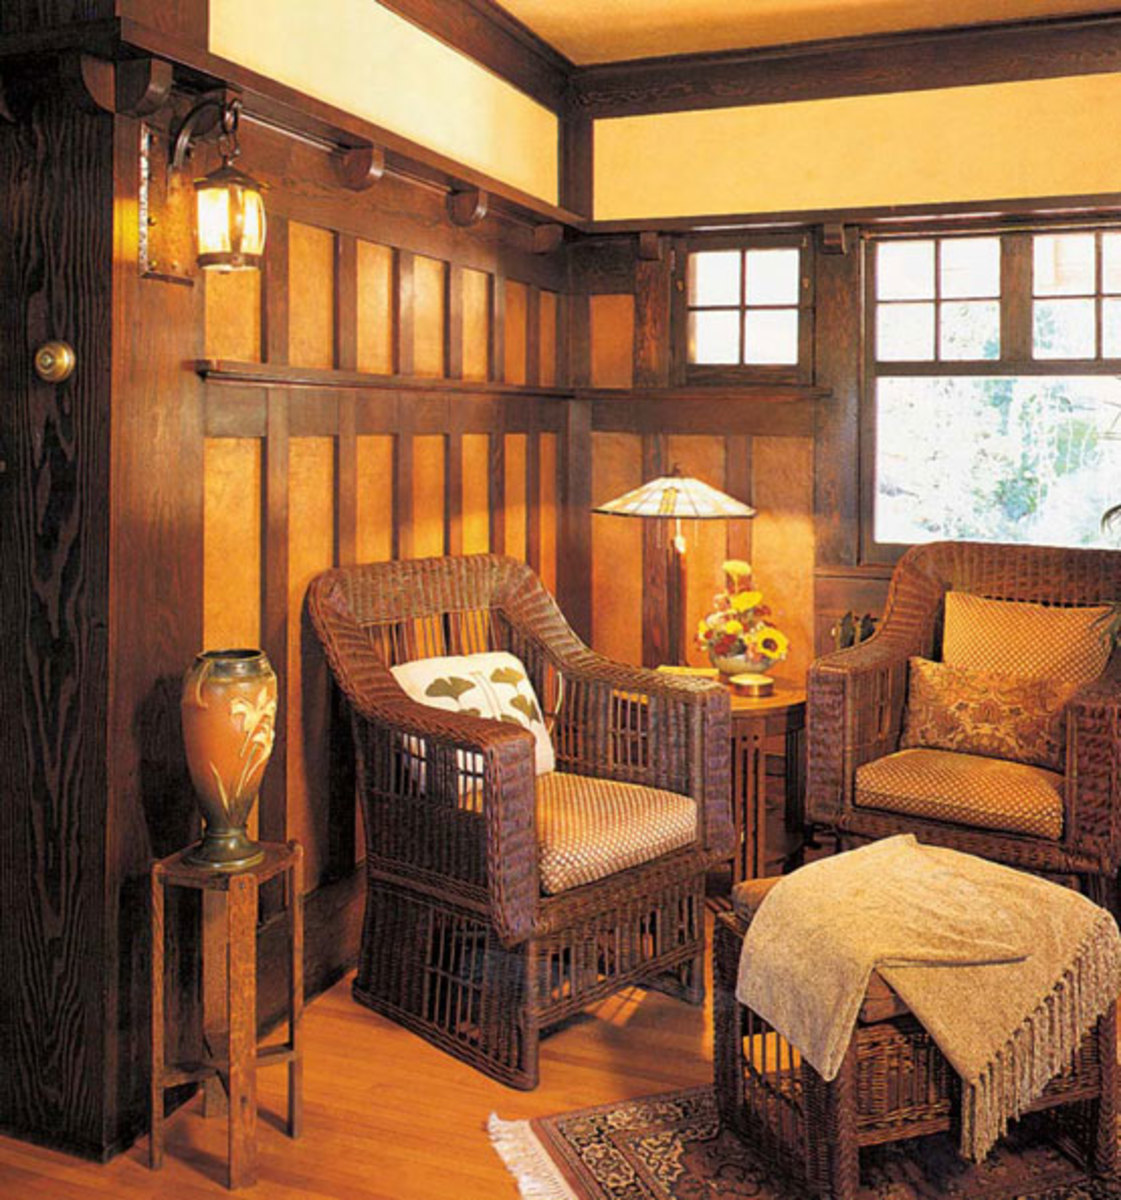 Wood Wainscot Revival Arts Amp Crafts Homes And The Revival